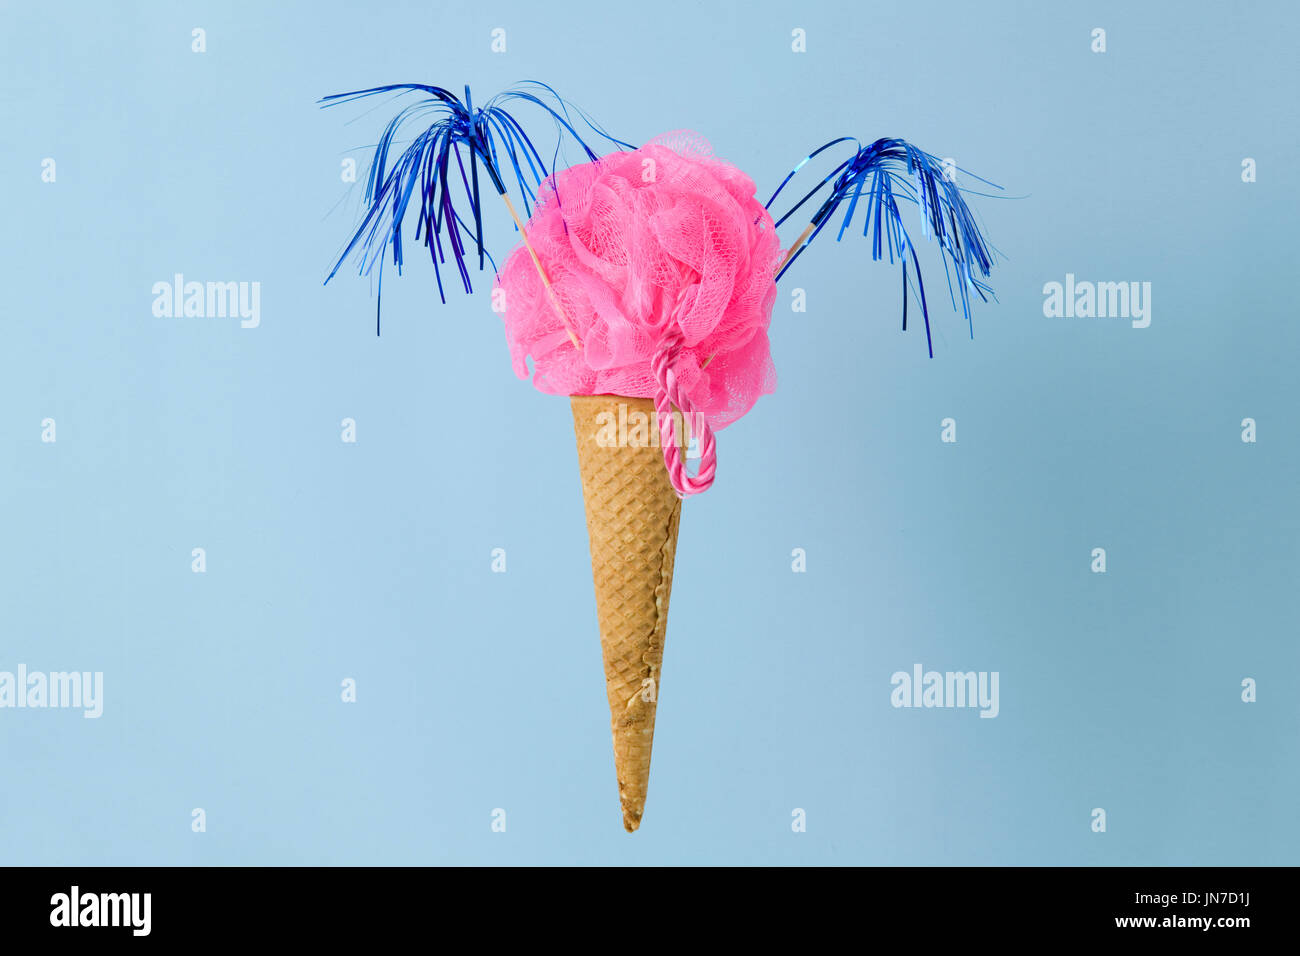 An ice cream cone whose scoop is replaced by a pink plastic loofah sponge. Photographic composition funny and offbeat. - Stock Image